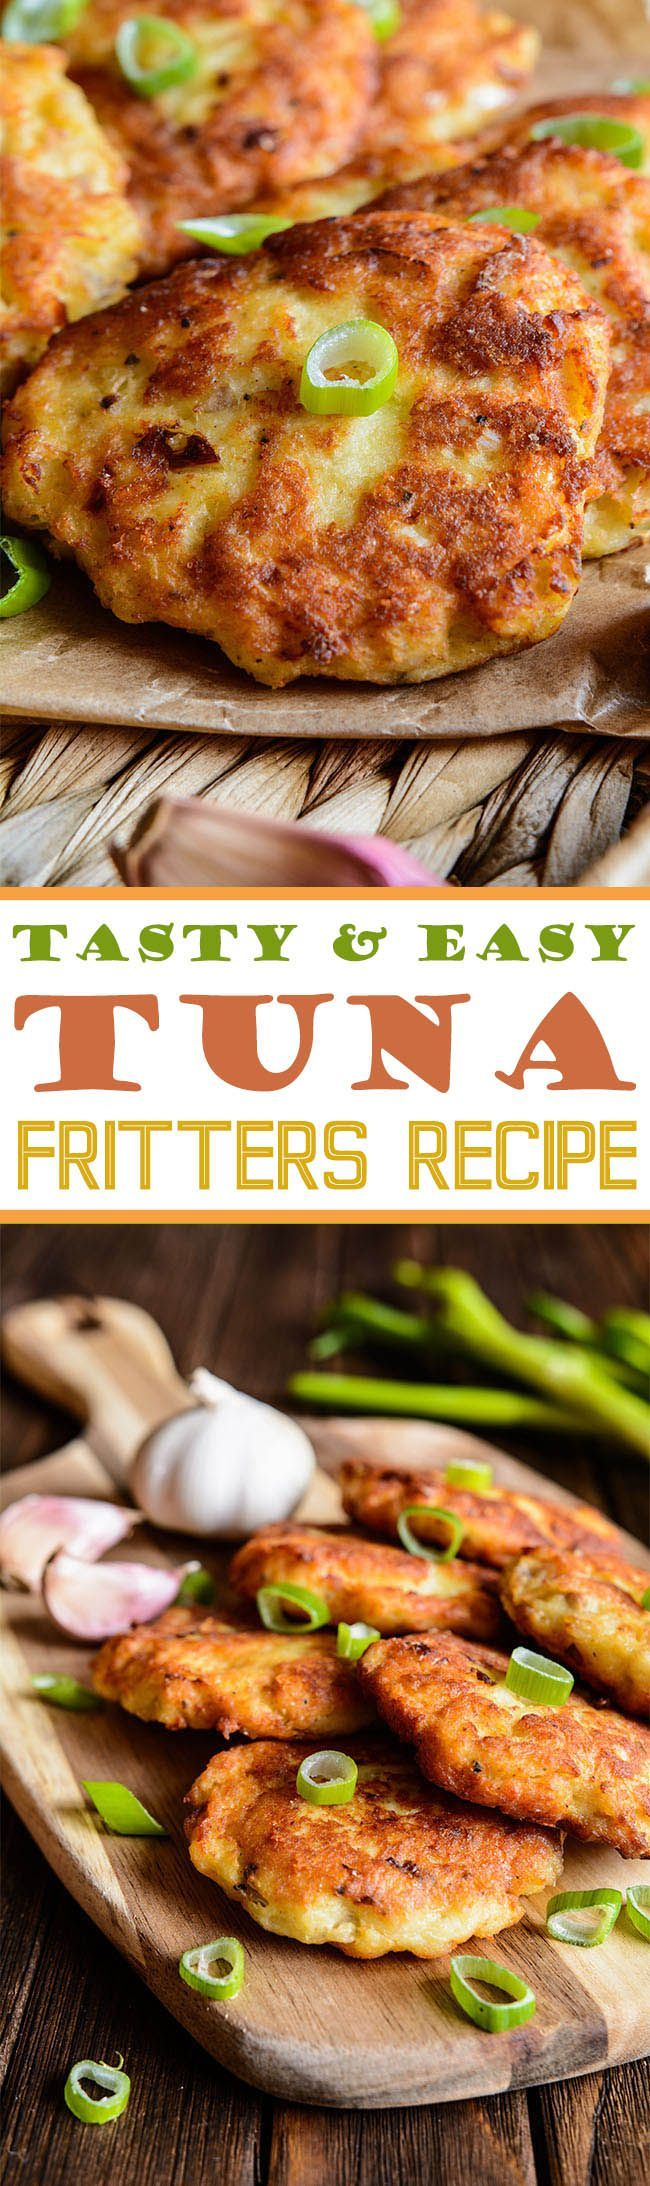 Tasty  Easy Tuna Fritters Recipe | Fish Recipes | Pan Baked | Tuna Recipes | Cooking | Food Blog | Yummy